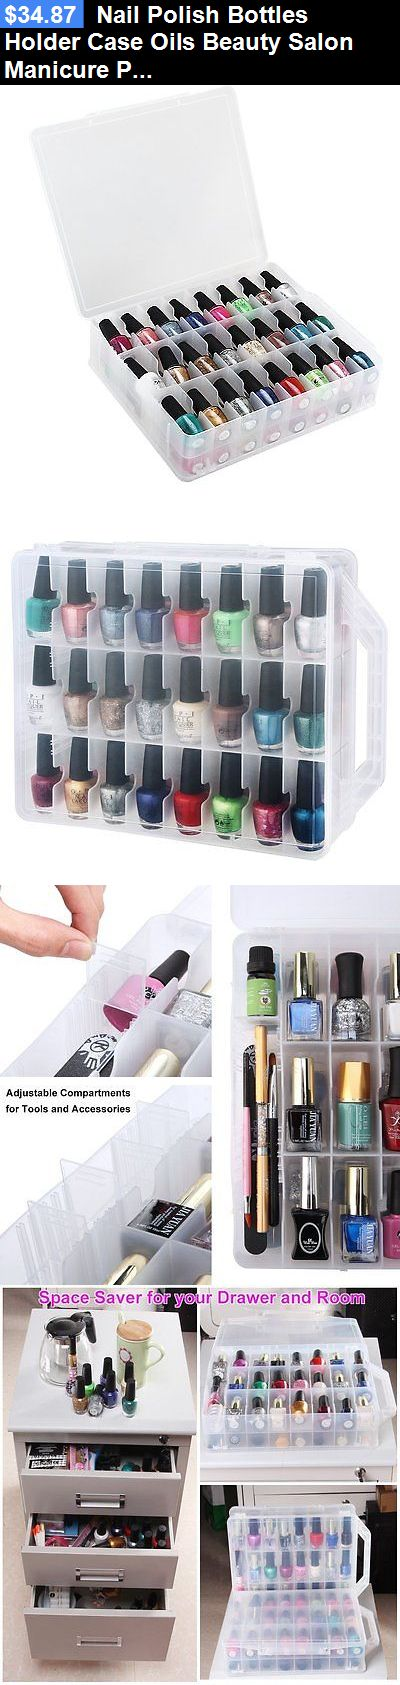 Storage and Empty Containers: Nail Polish Bottles Holder Case Oils Beauty Salon Manicure Pedicure Fingernails BUY IT NOW ONLY: $34.87